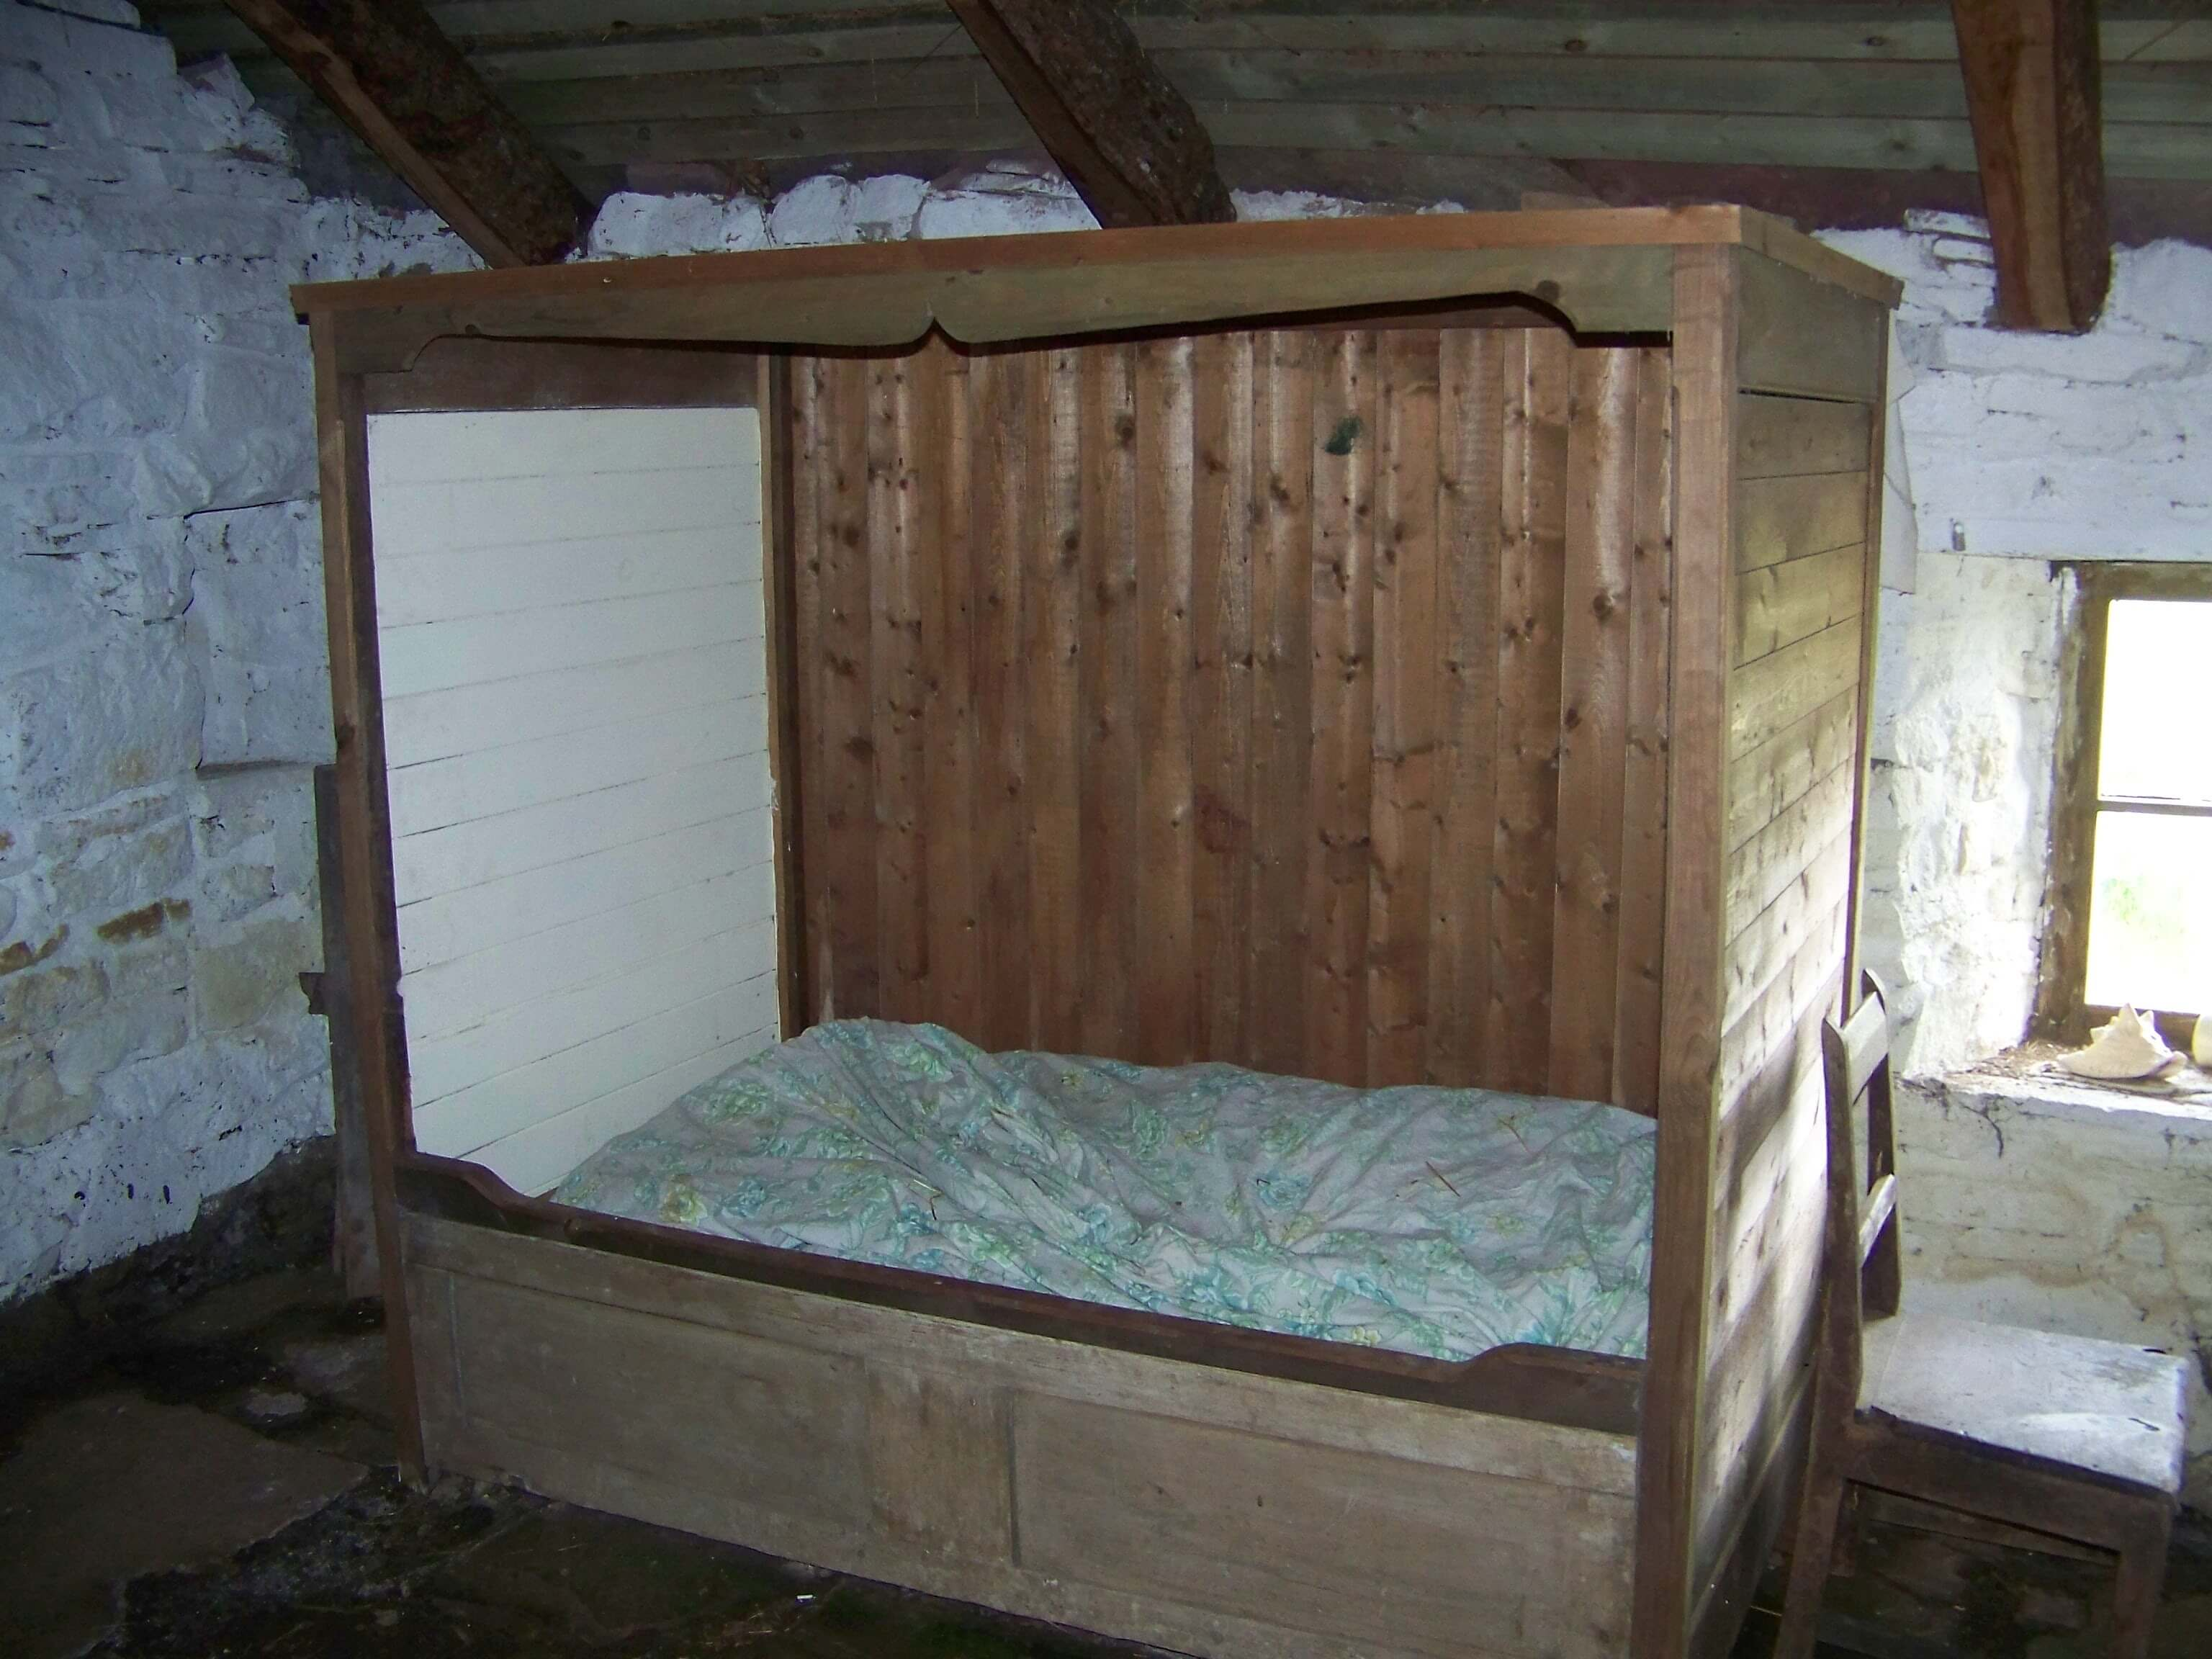 A box bed in the Craa's Nest croft museum, Hoy, Orkney